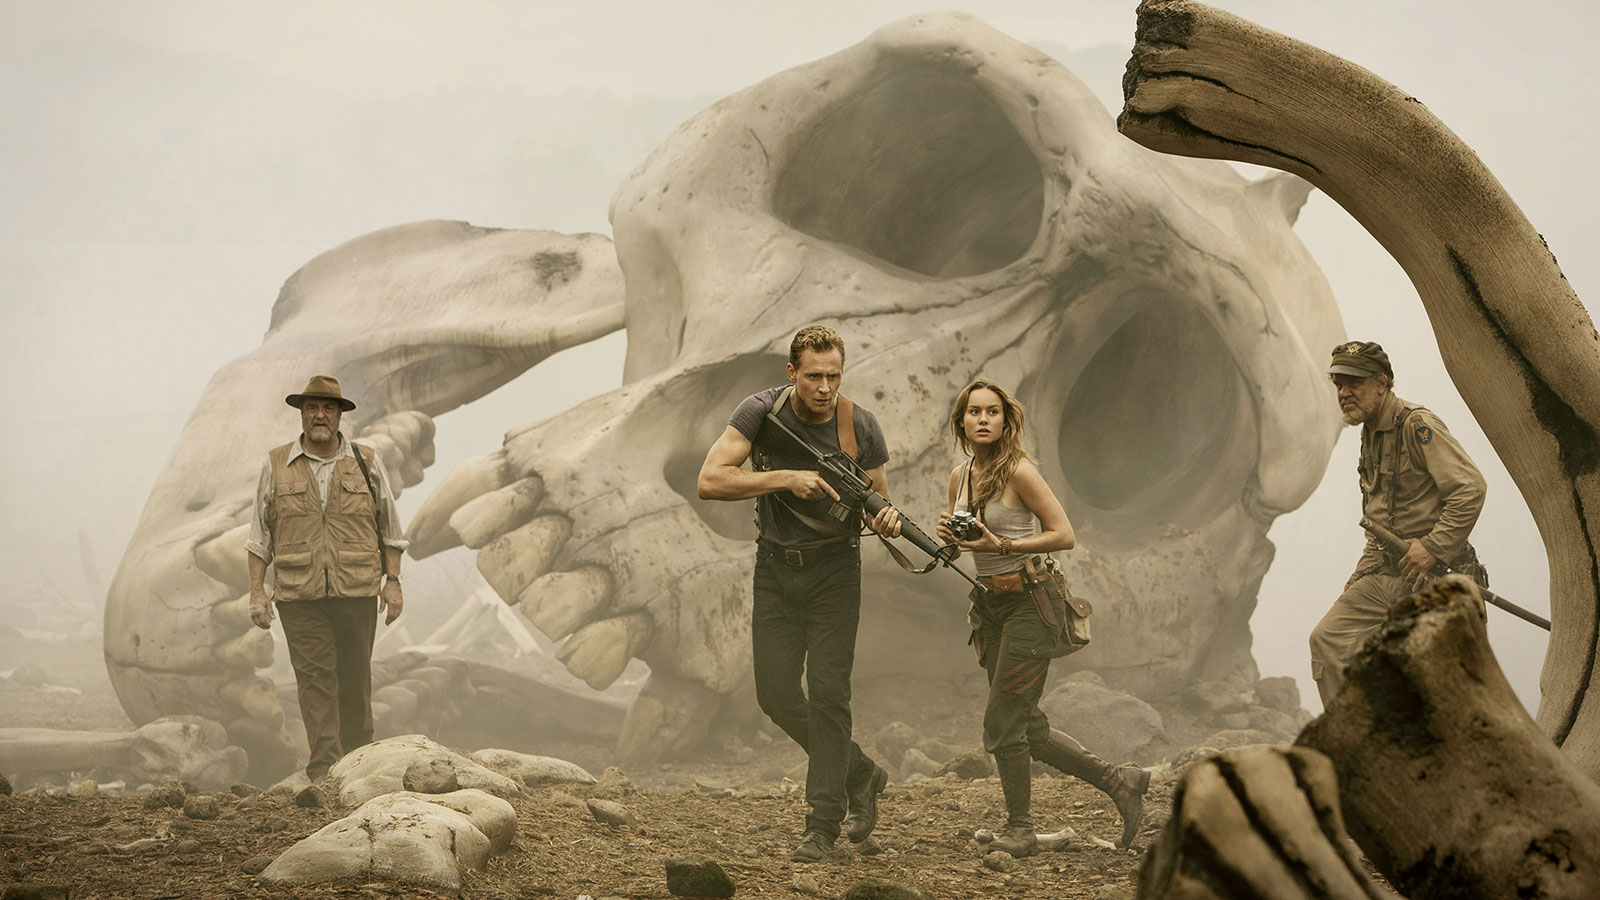 Skull Island Teaser Reveals King Kong Remake At Comic Con: The King Rules In 'Kong: Skull Island' #SDCC Trailer